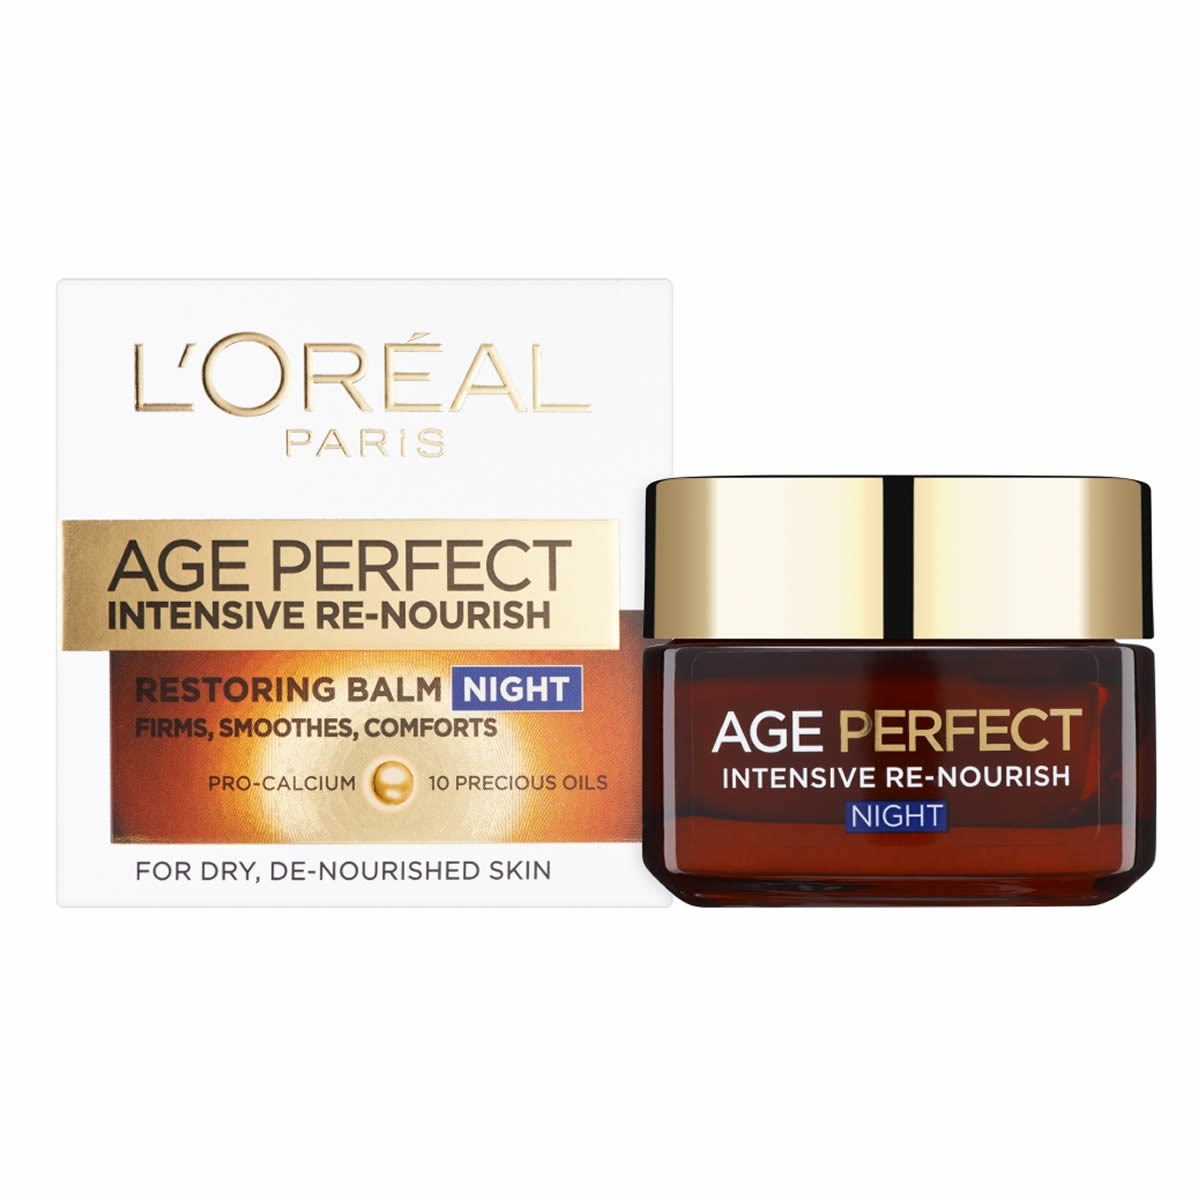 L'Oreal Paris Age Perfect Intensive High Nutrition Night Balm Pot